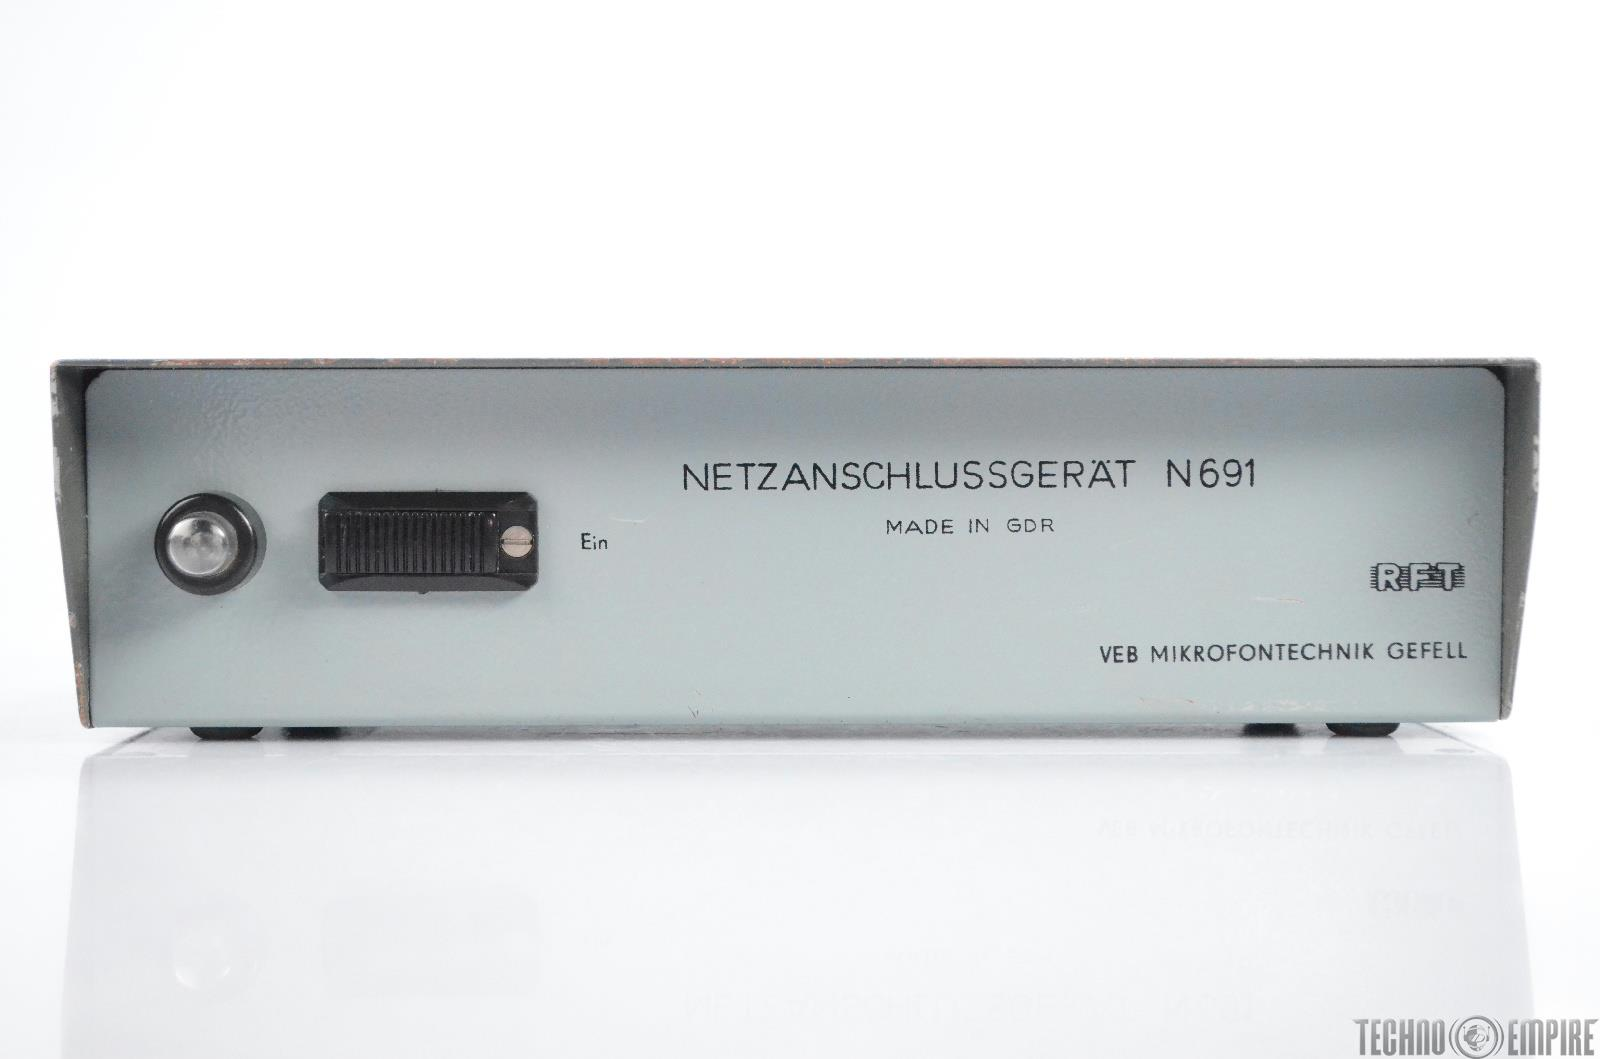 Neumann Gefell RFT N691 Microphone Mic Power Supply Netzanshlussgerat 691 #31002